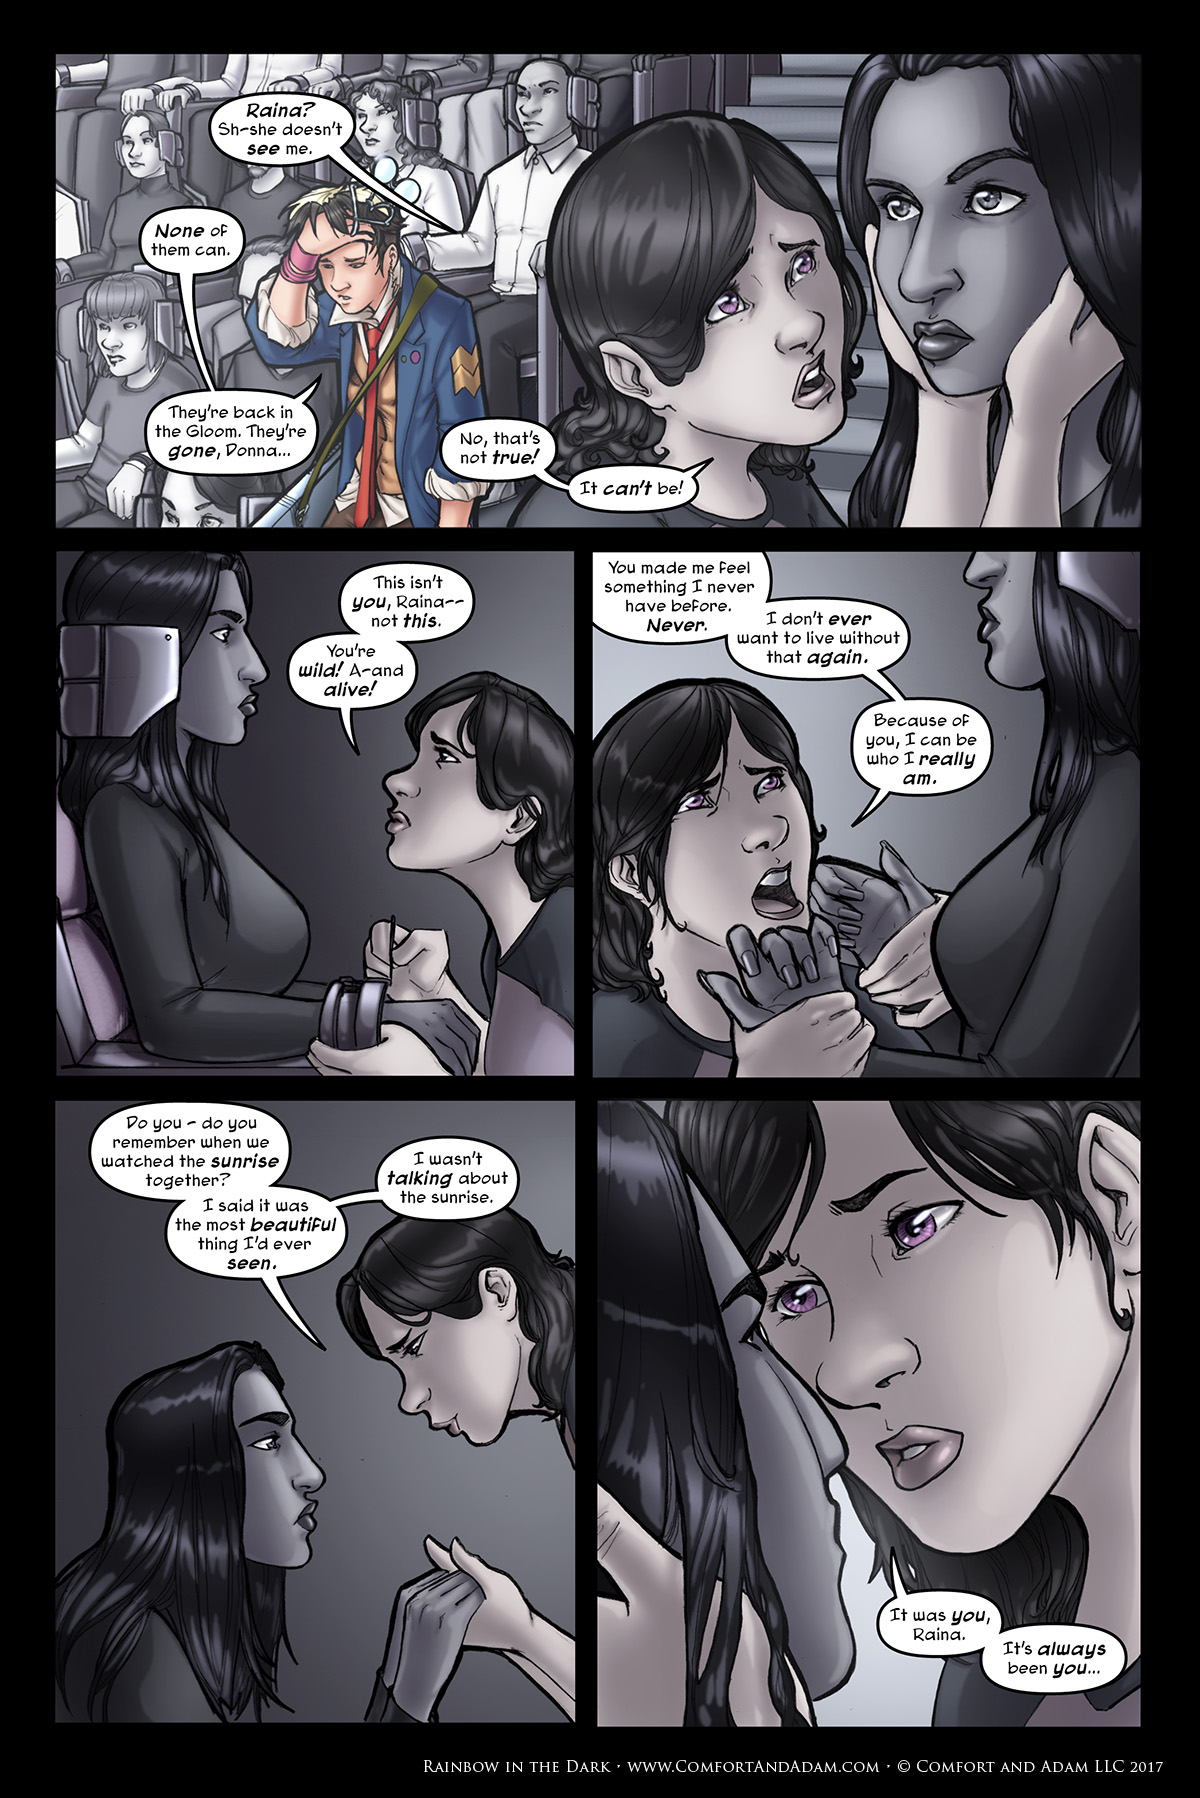 Rainbow in the Dark #3, pg. 18: This Isn't You